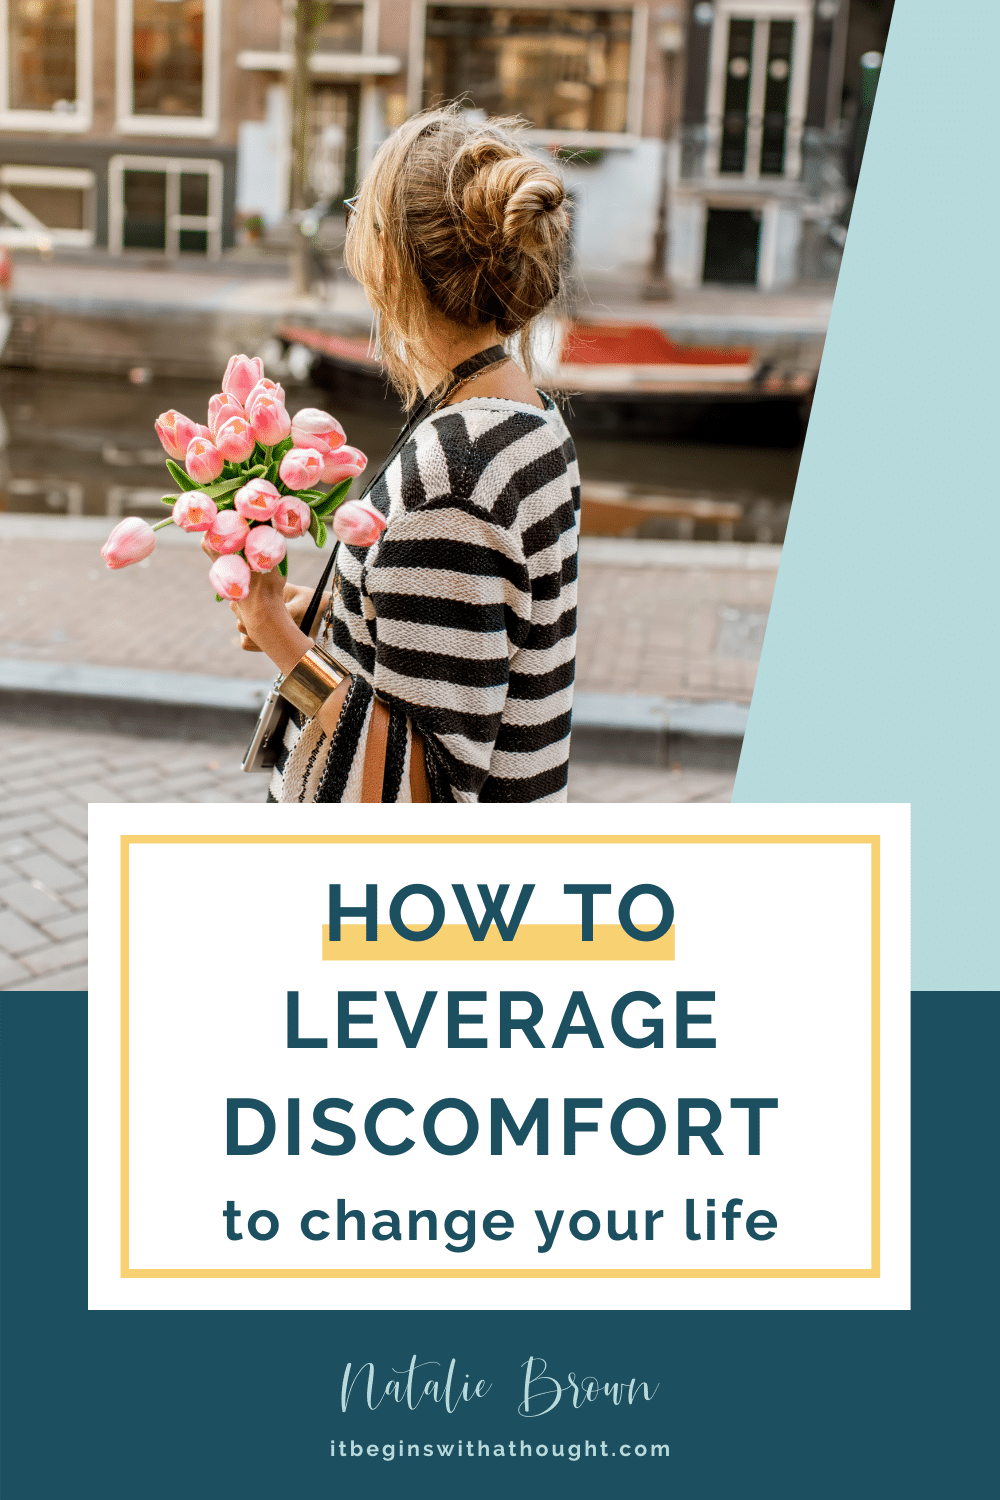 How To Leverage Discomfort To Change Your Life